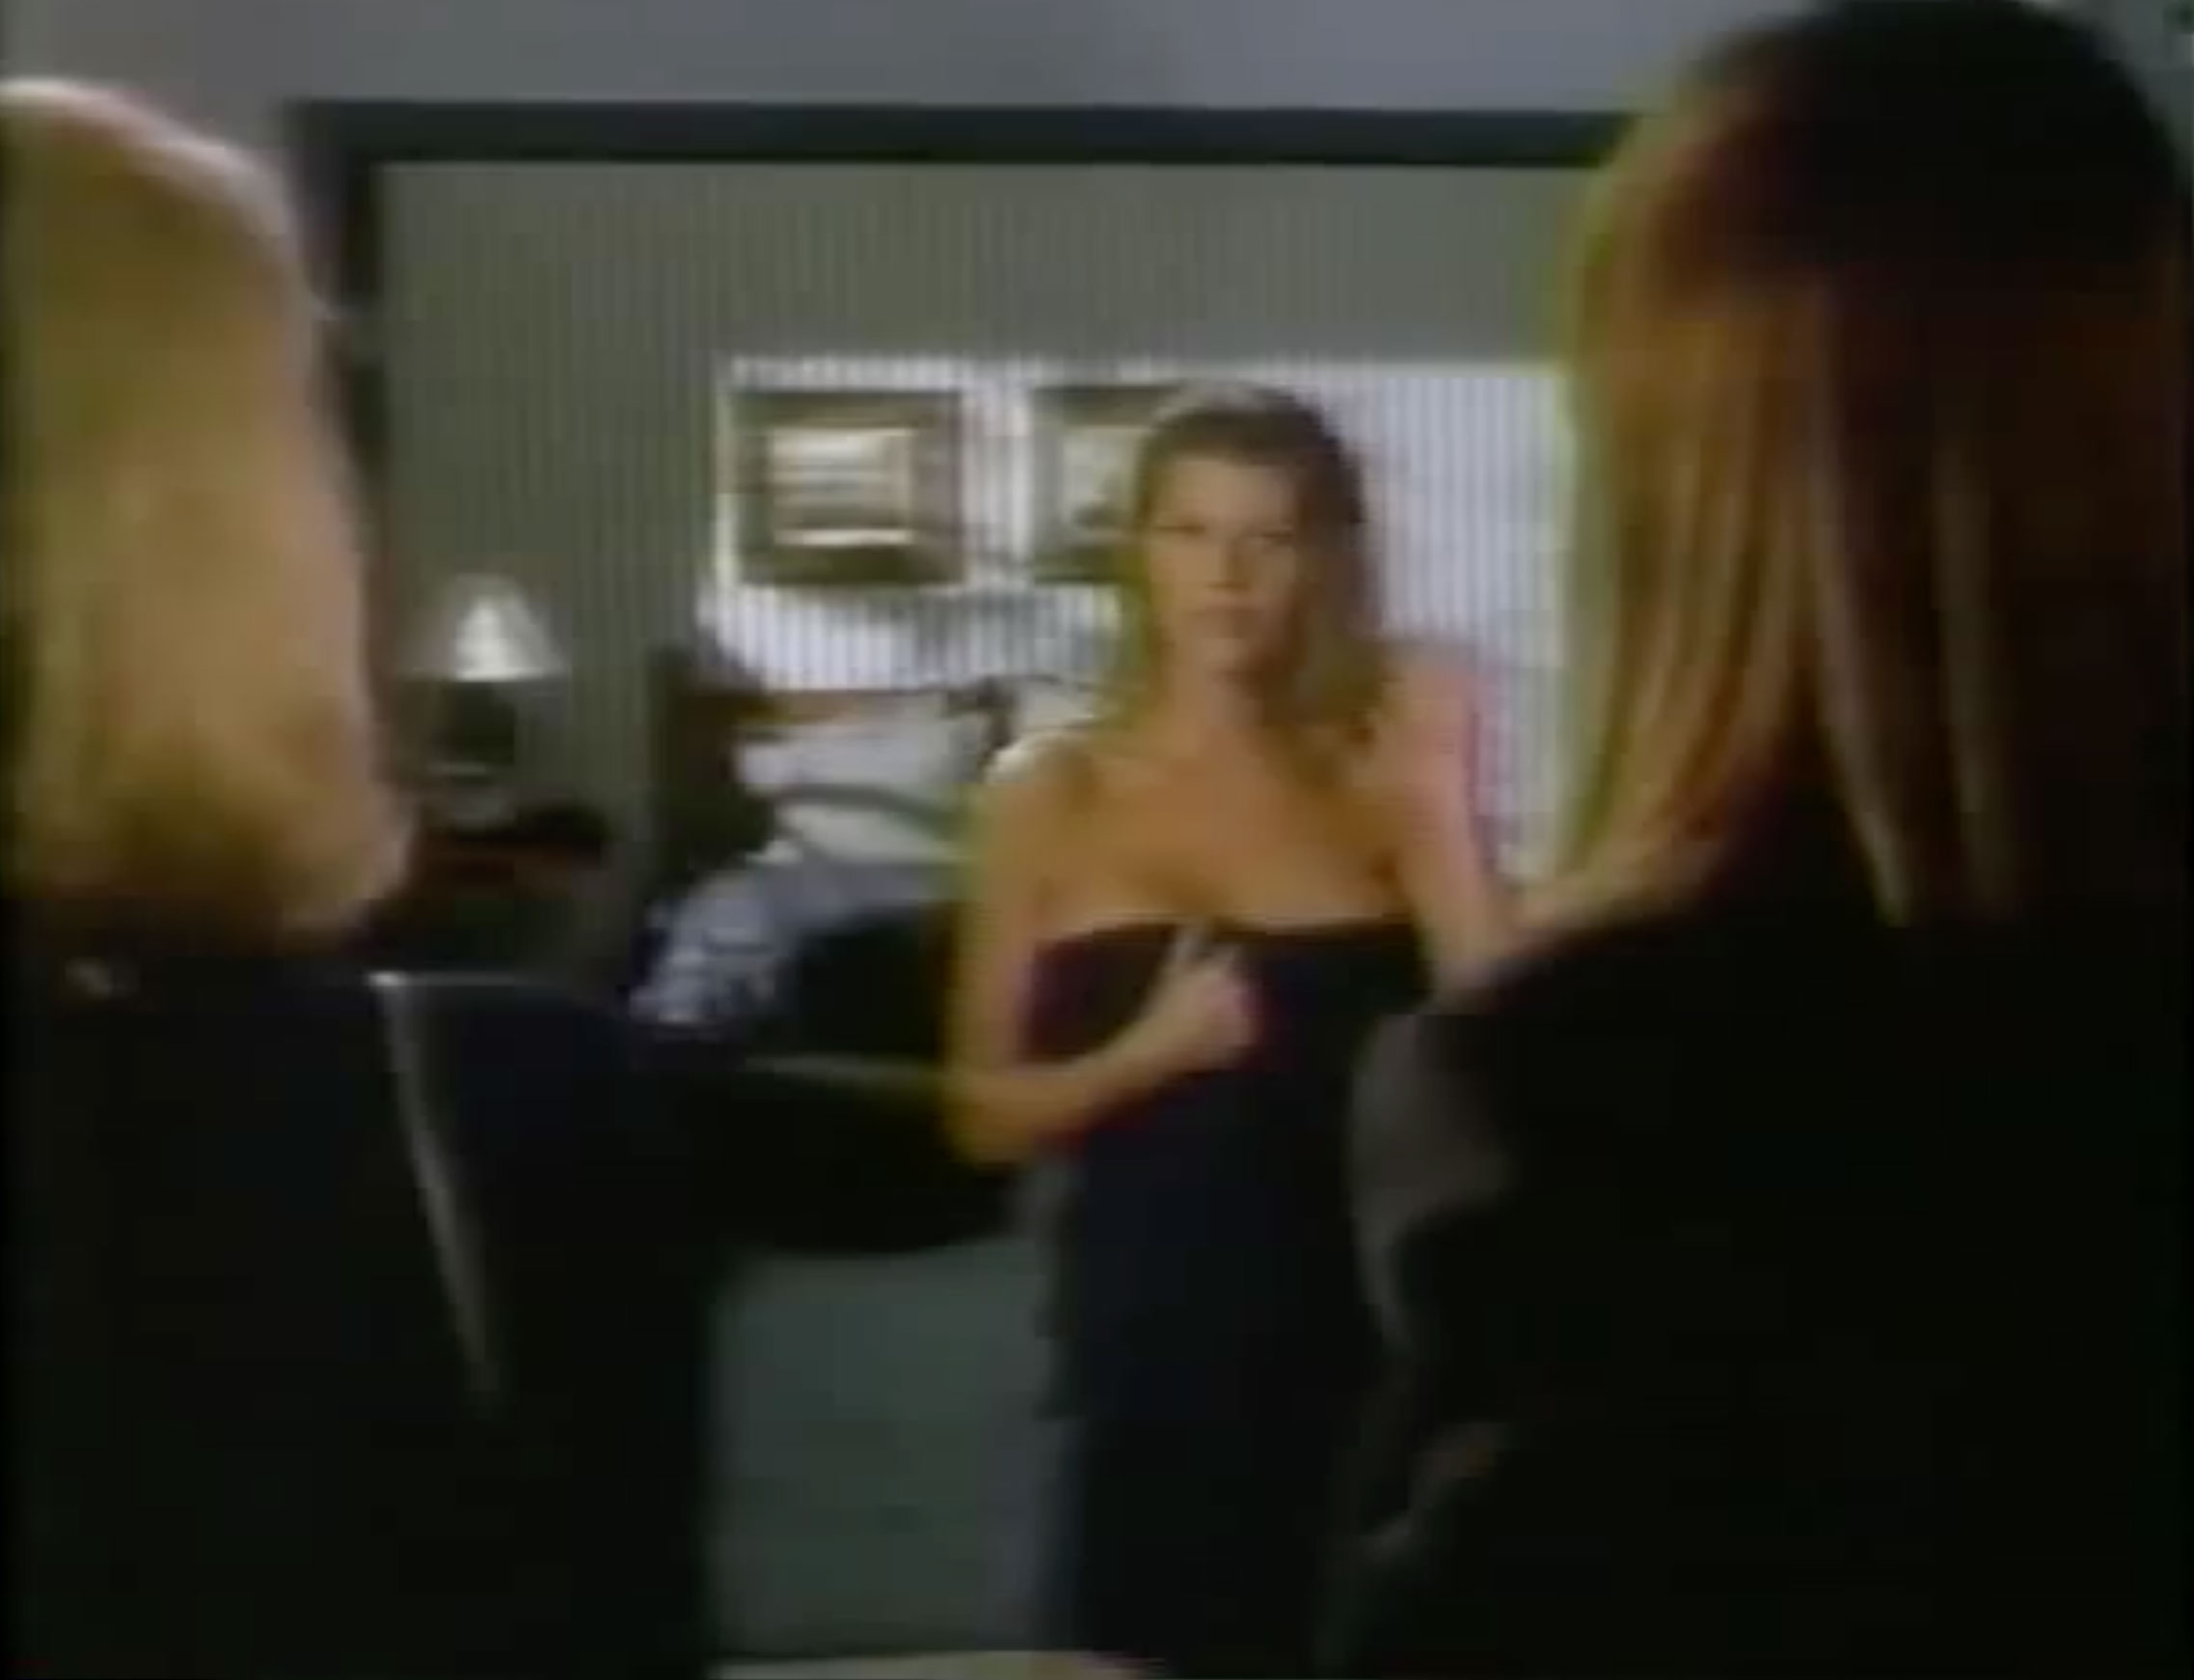 Front view of the character Monica pretending to be Bunny to fool Reese on Savannah, the Aaron Spelling series.